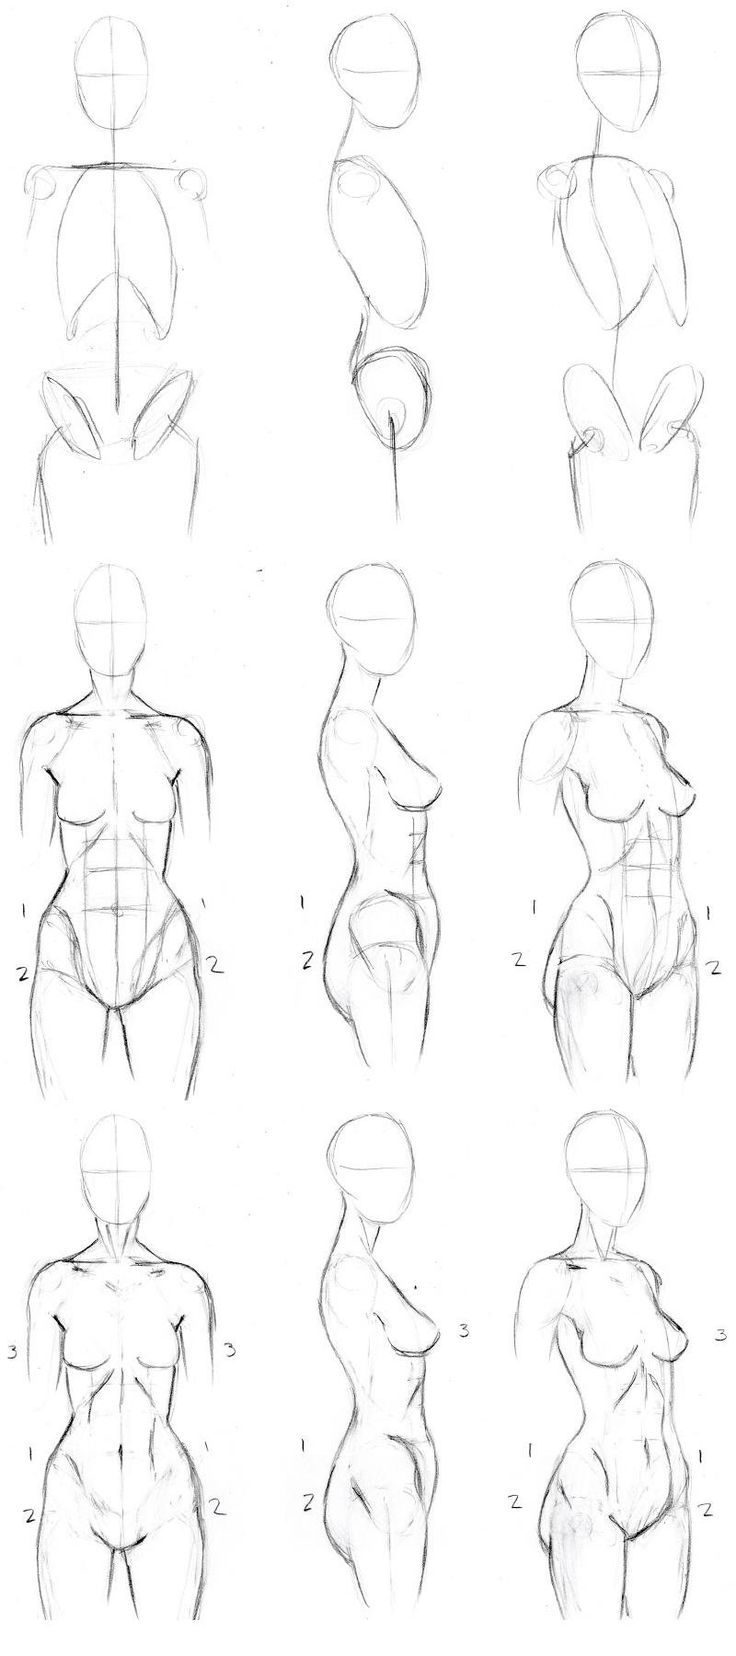 Step 1: Skeleton Sketch your basic structure outline. For the torso we will of course need the vertebrae, ribcage and pelvis. Don't worry about sketching these the -exact- shape of the actual bones...